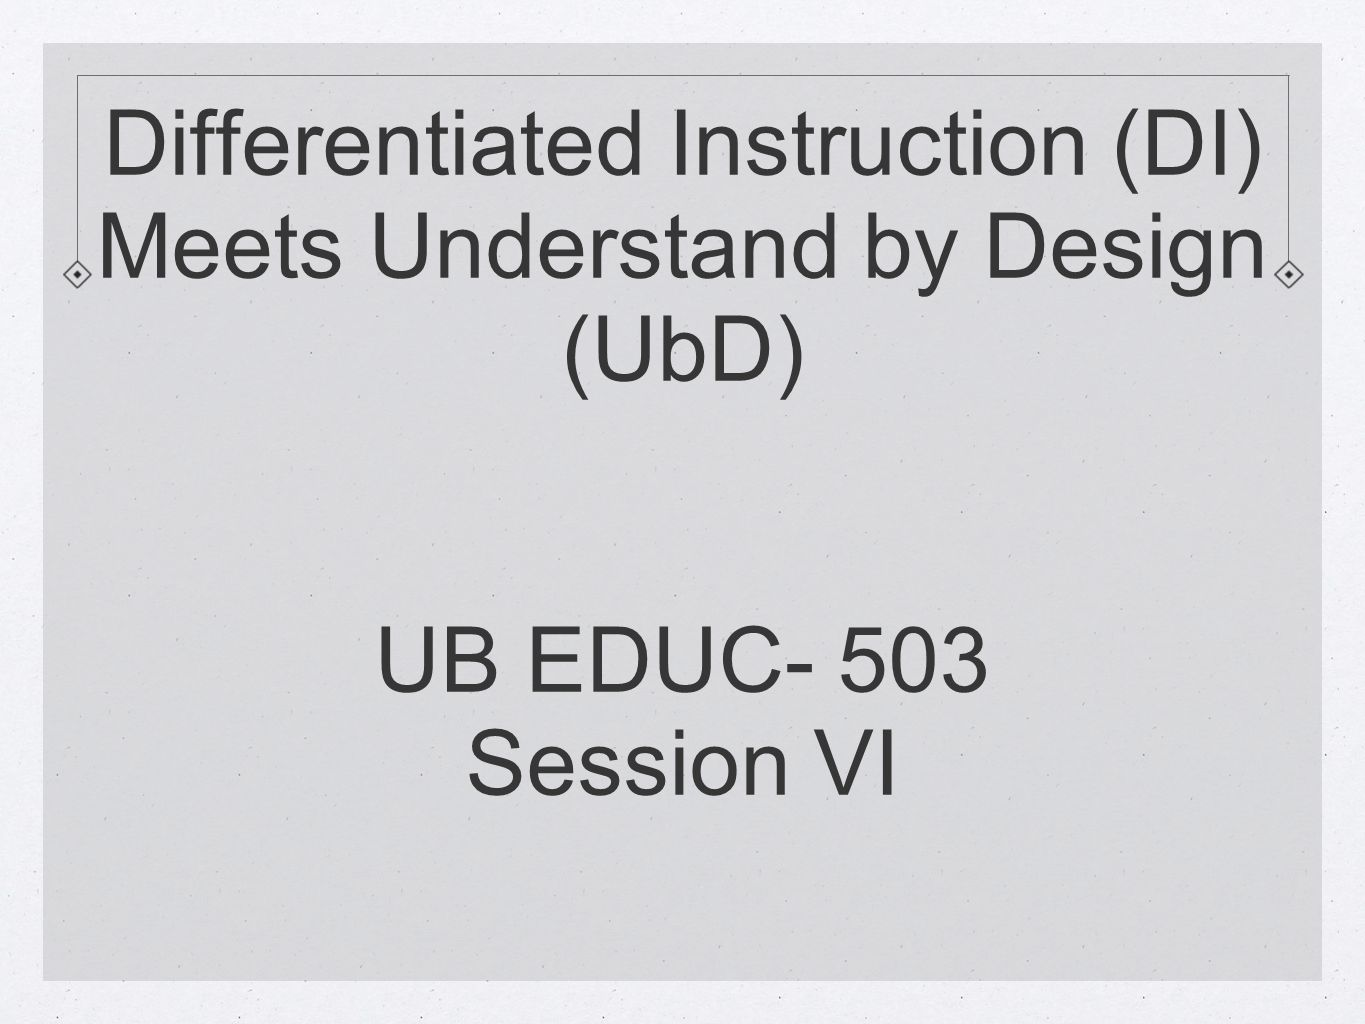 Differentiated Instruction Di Meets Understand By Design Ubd Ub Educ 503 Session Vi Ppt Download